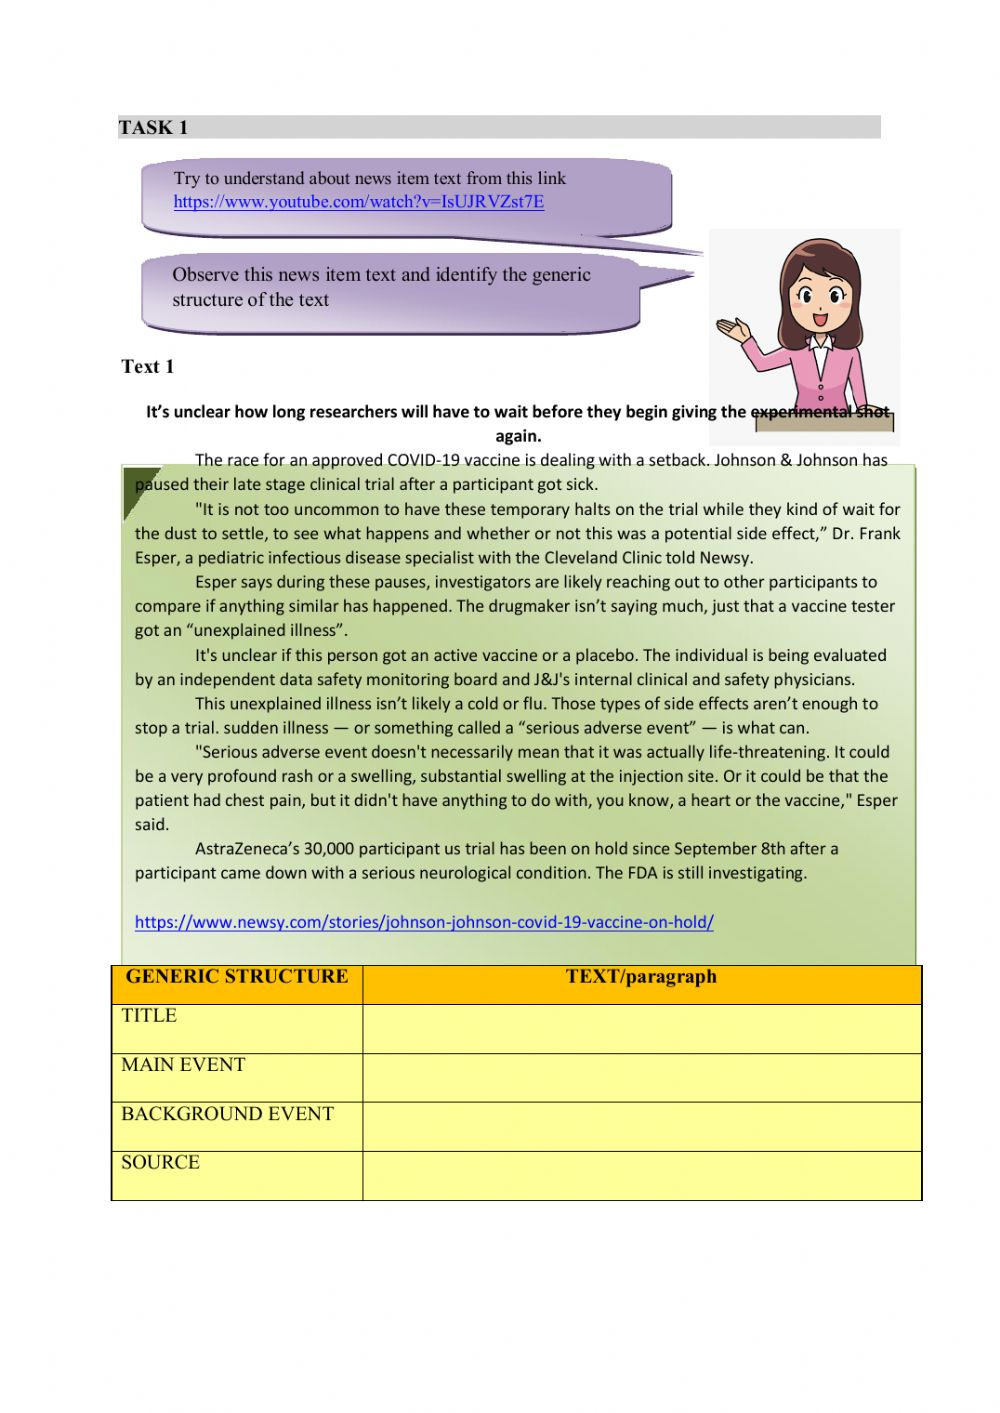 Generic Structure Of News Item : generic, structure, Interactive, Worksheet